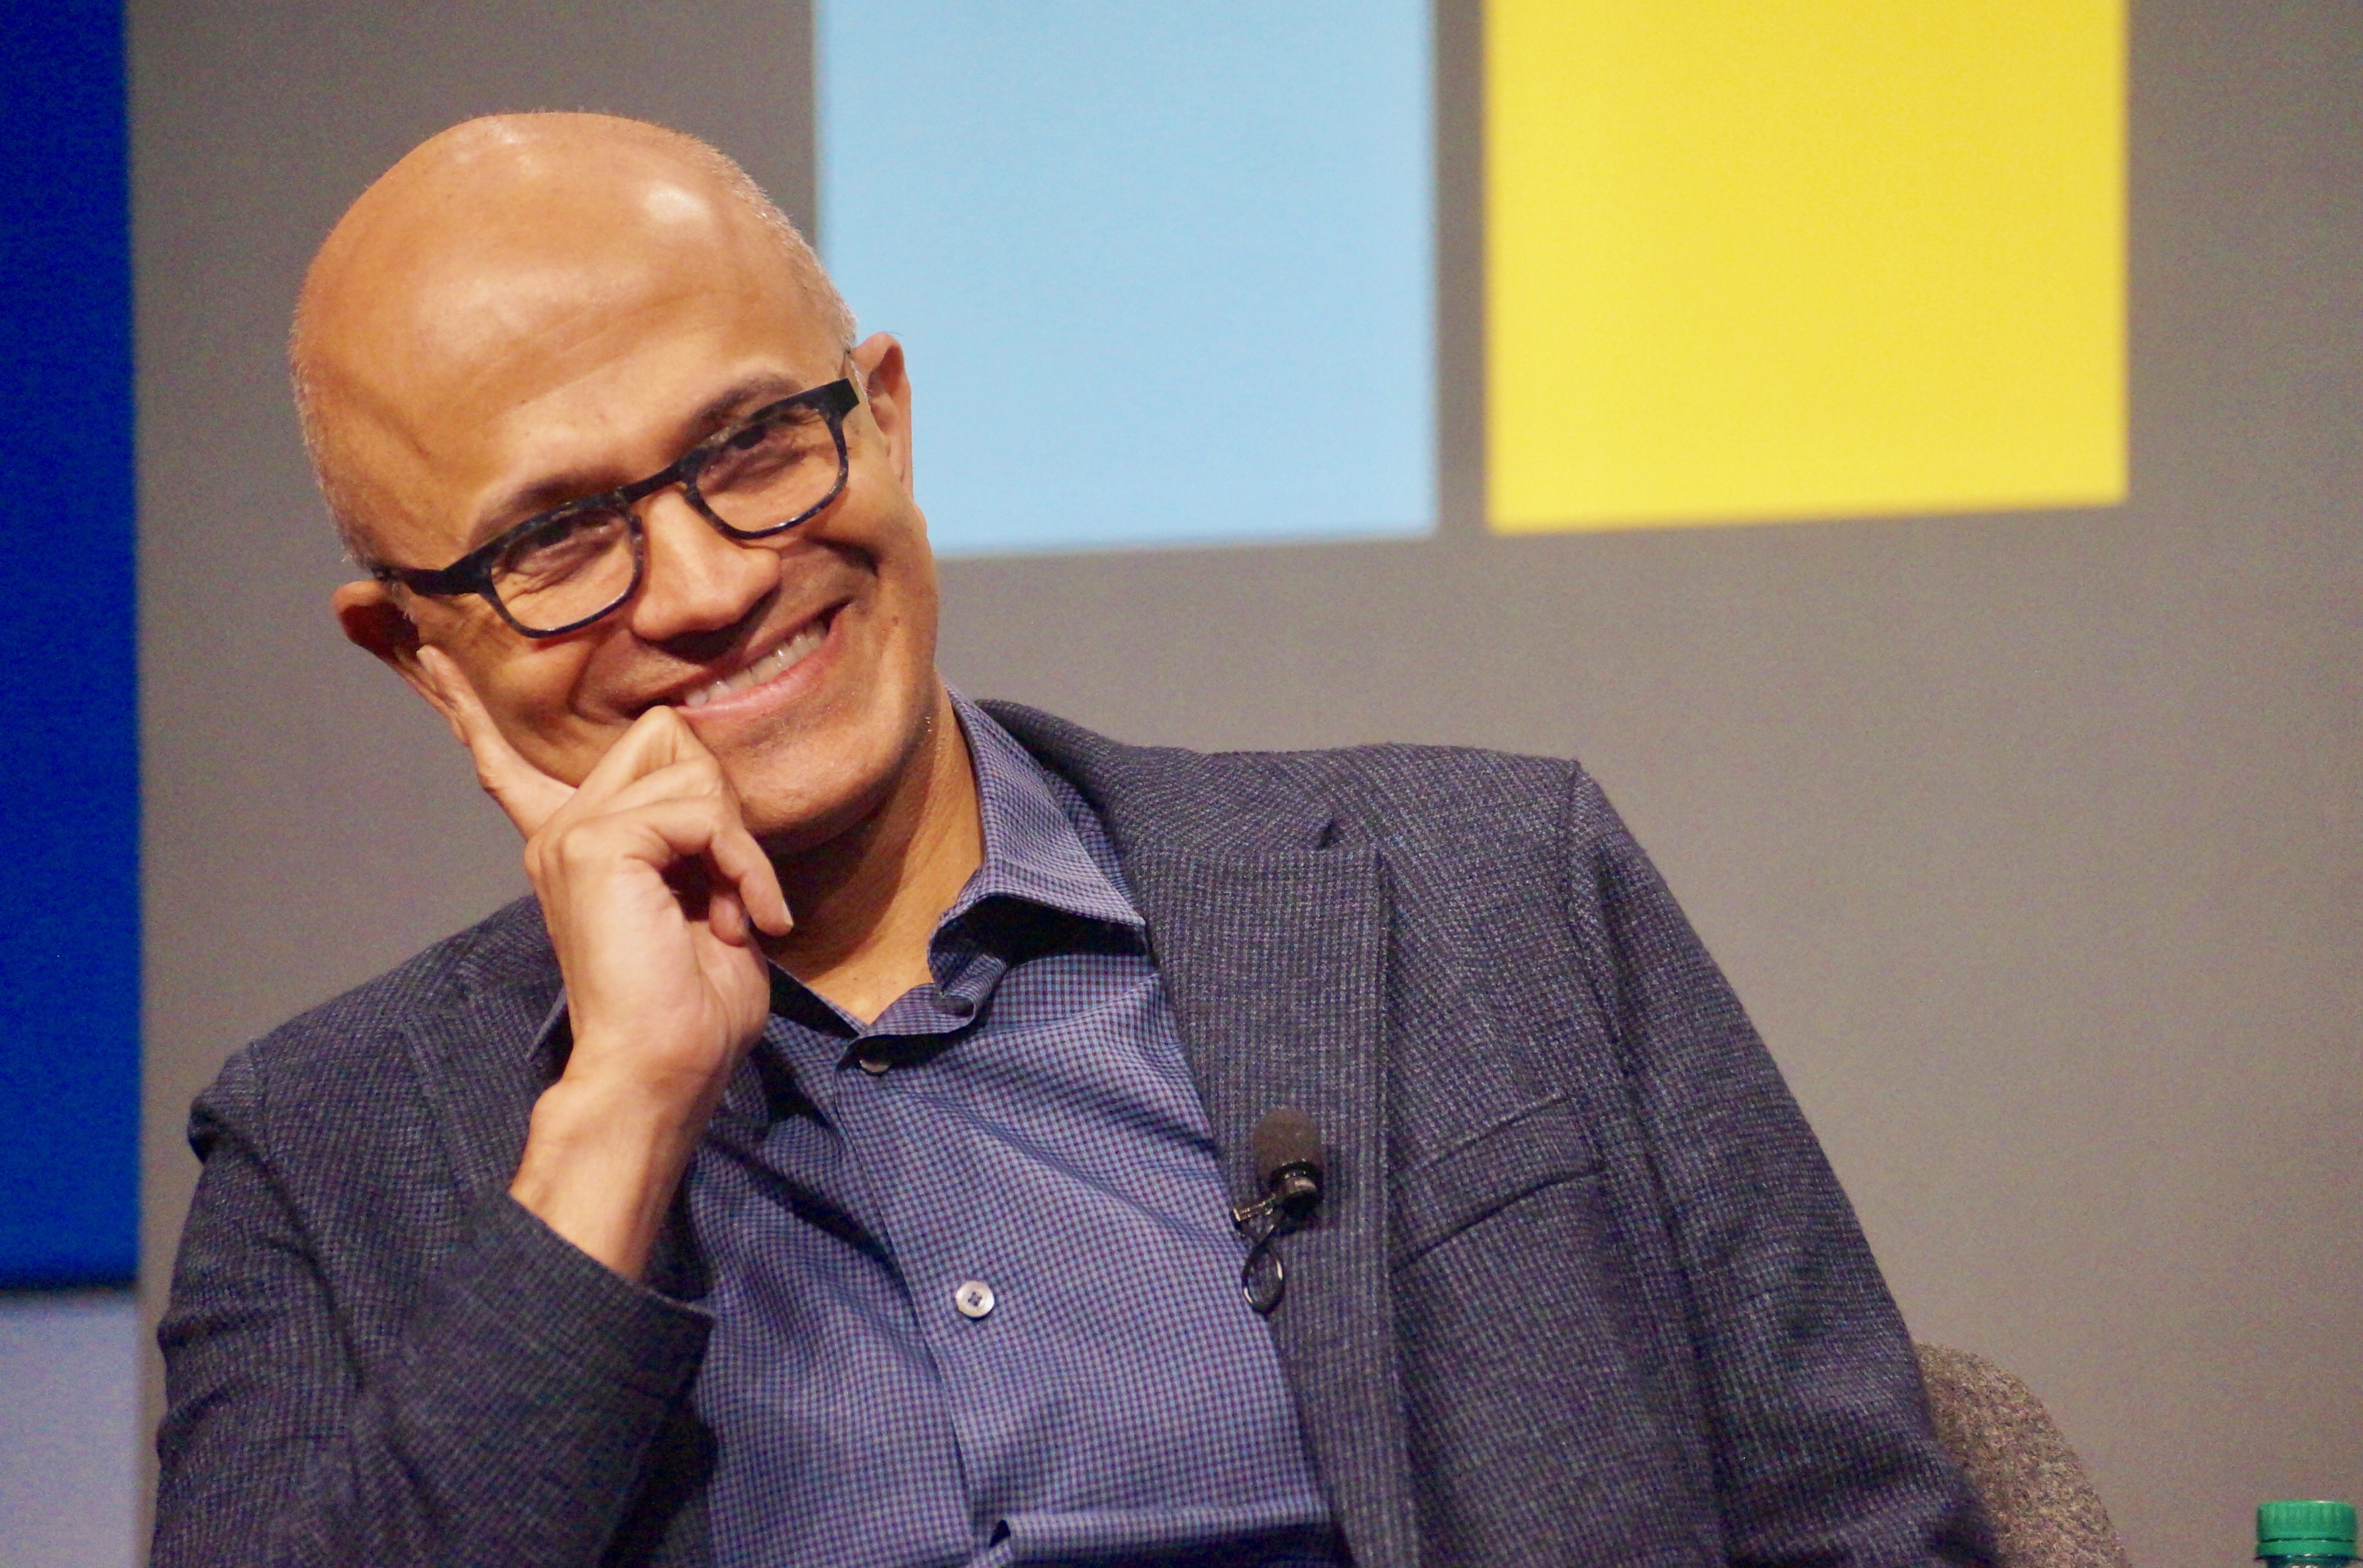 Microsoft cruises past expectations for fiscal Q1, revenue up 12% to $37.2B, profits up 30%